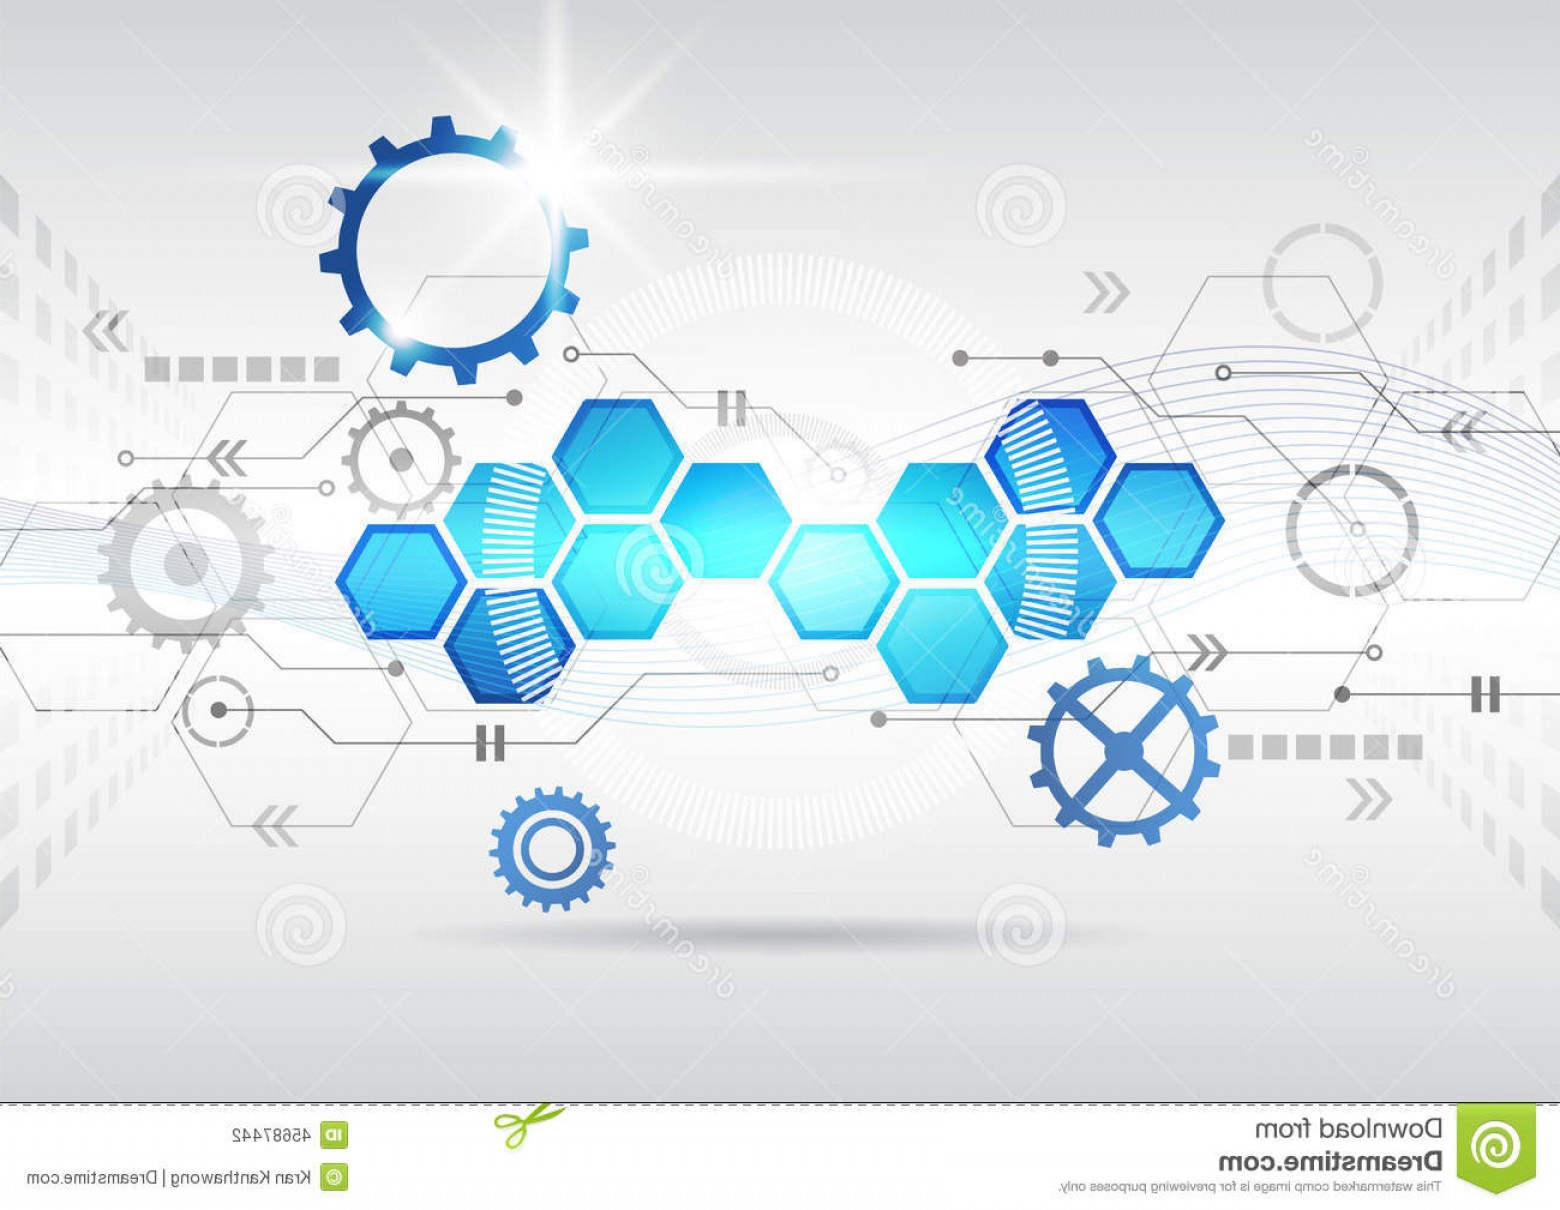 Futuristic Render Vector Graphics: Stock Illustration Abstract Futuristic Circuit High Computer Technology Business Background Innovation Image